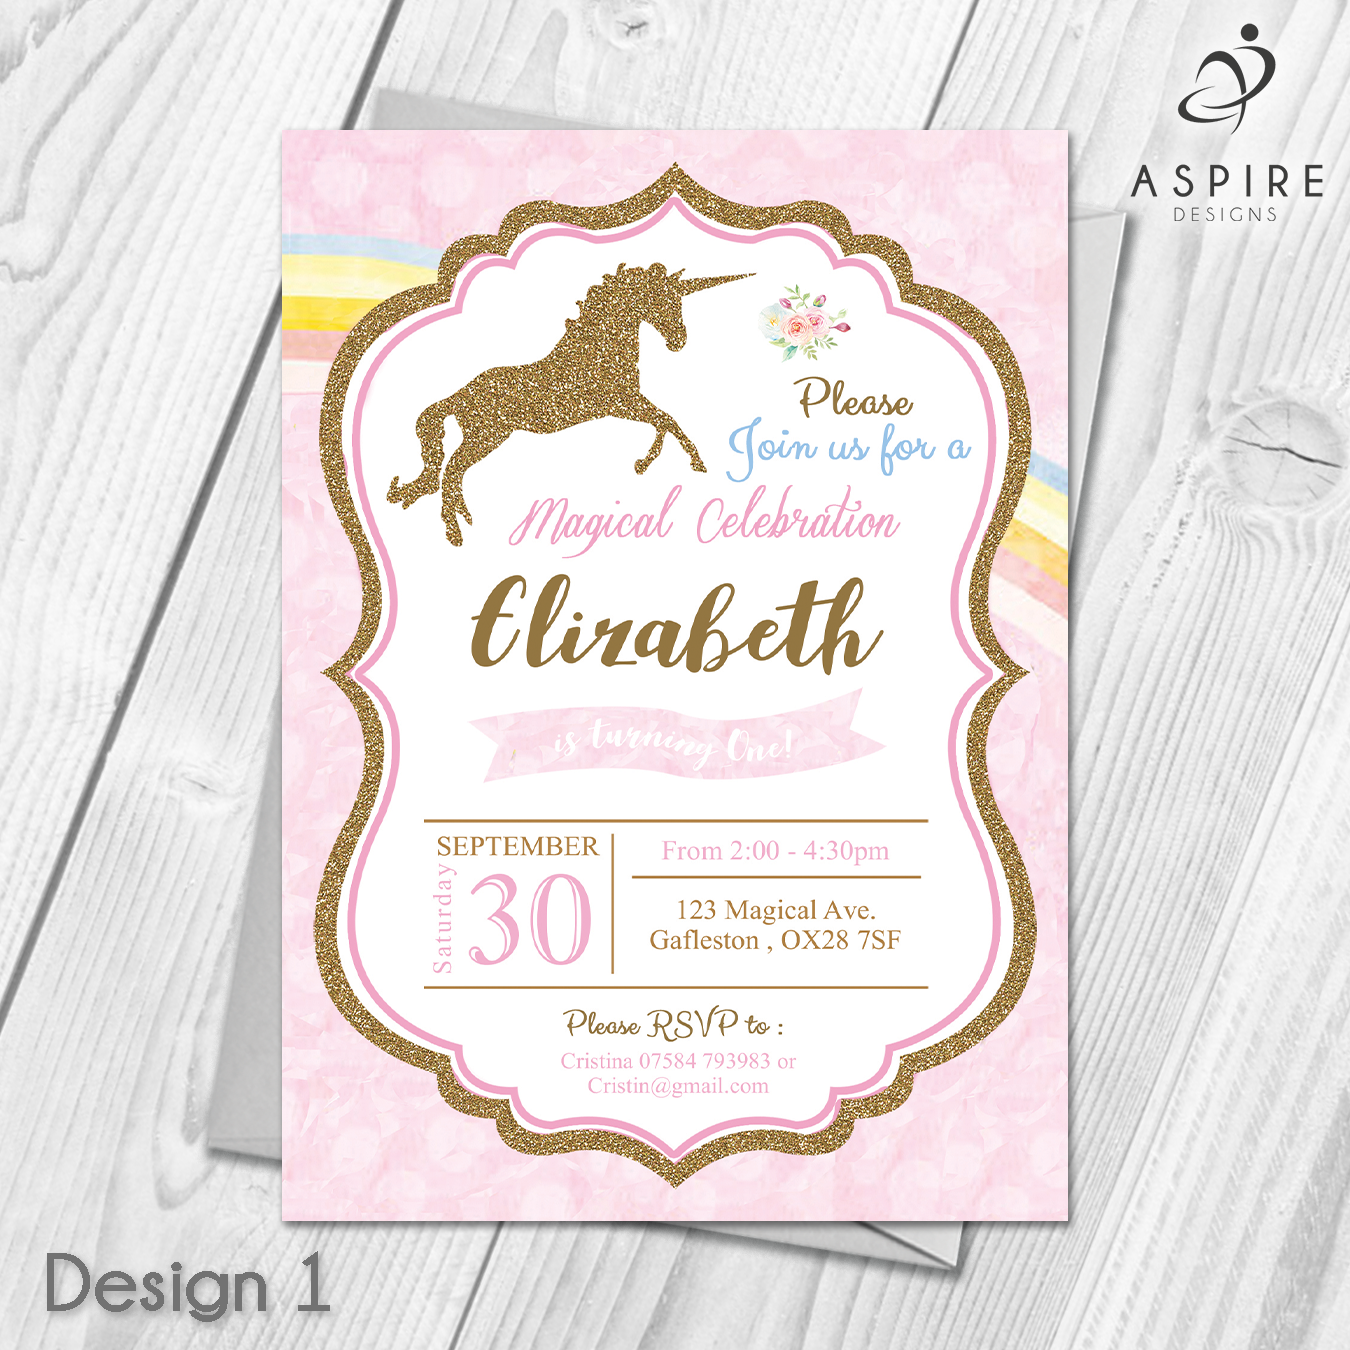 Personalised girls childrens unicorn pink birthday party invitations personalised girls childrens unicorn pink birthday party invitations 10 100 custom made with your own text all orders include free uk 1st class royal mail filmwisefo